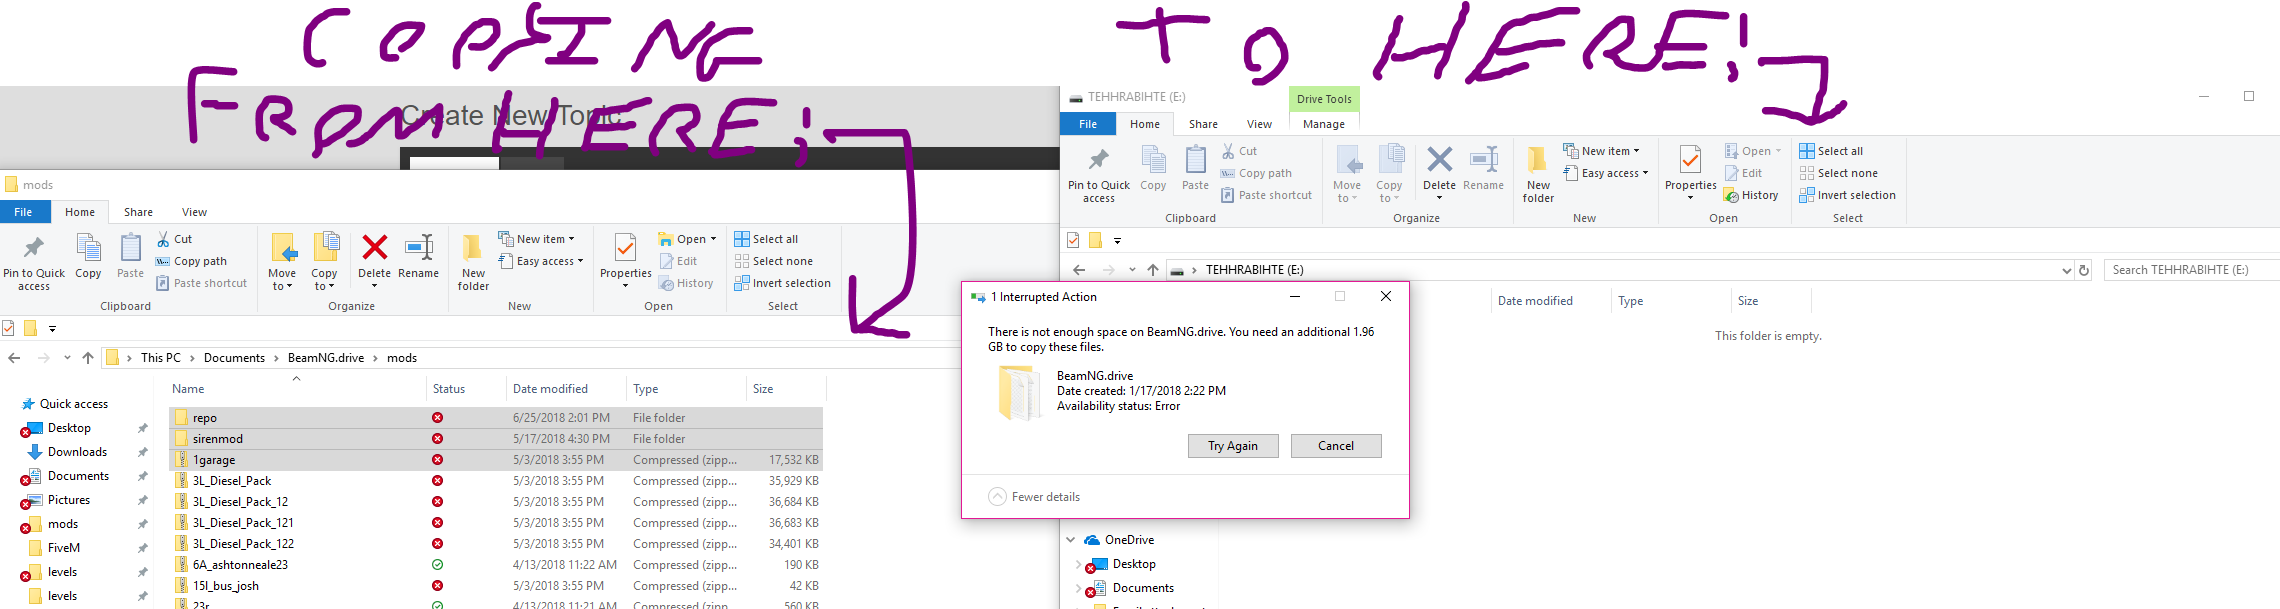 Can T Copy And Paste Files Says There Is Not Enough Space On The